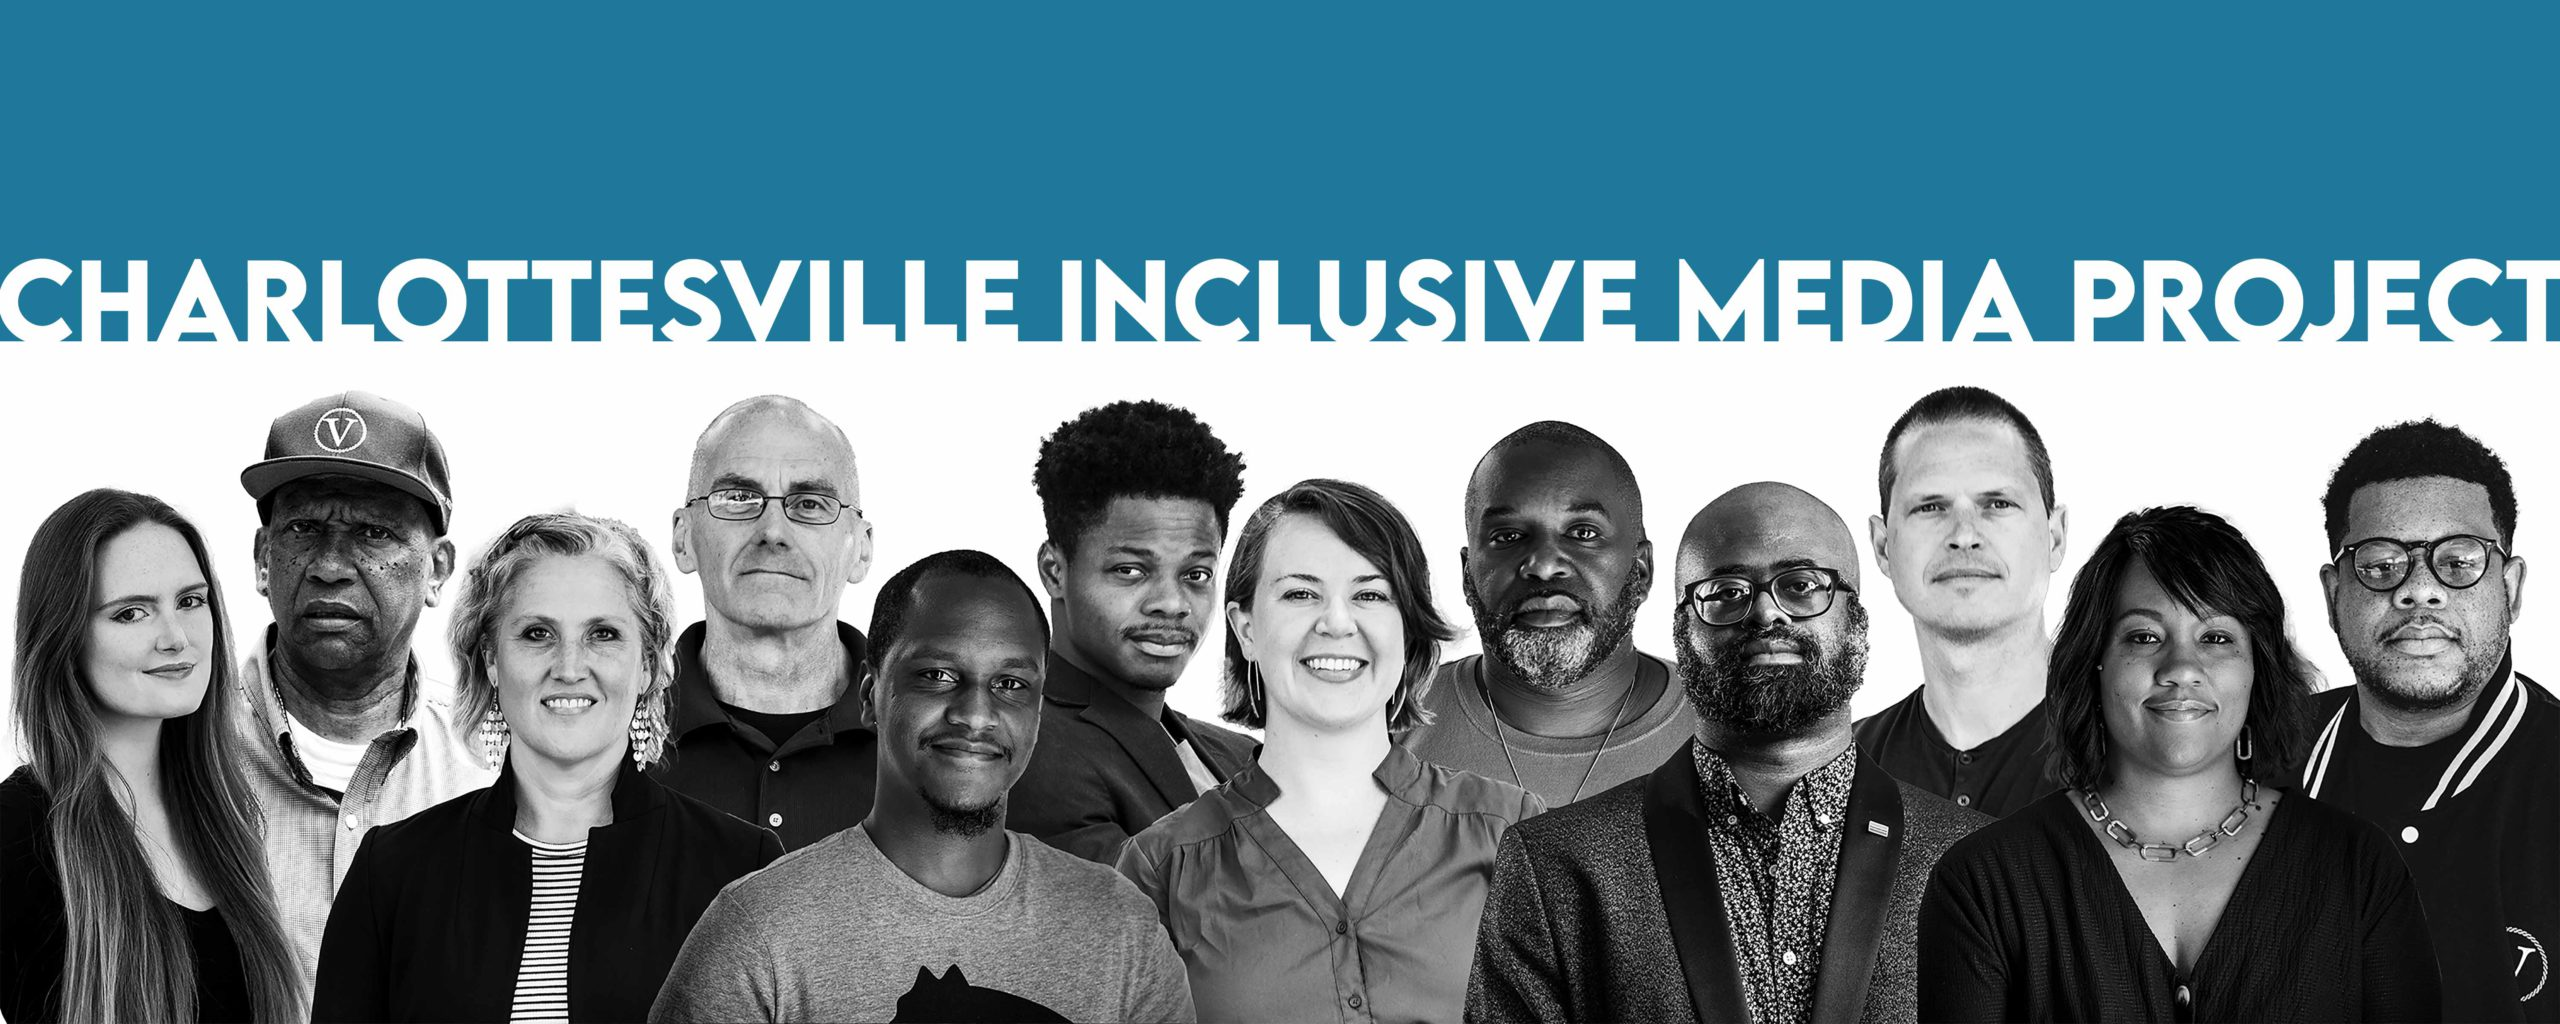 Charlottesville Inclusive Media project logo with a racially diverse group of people